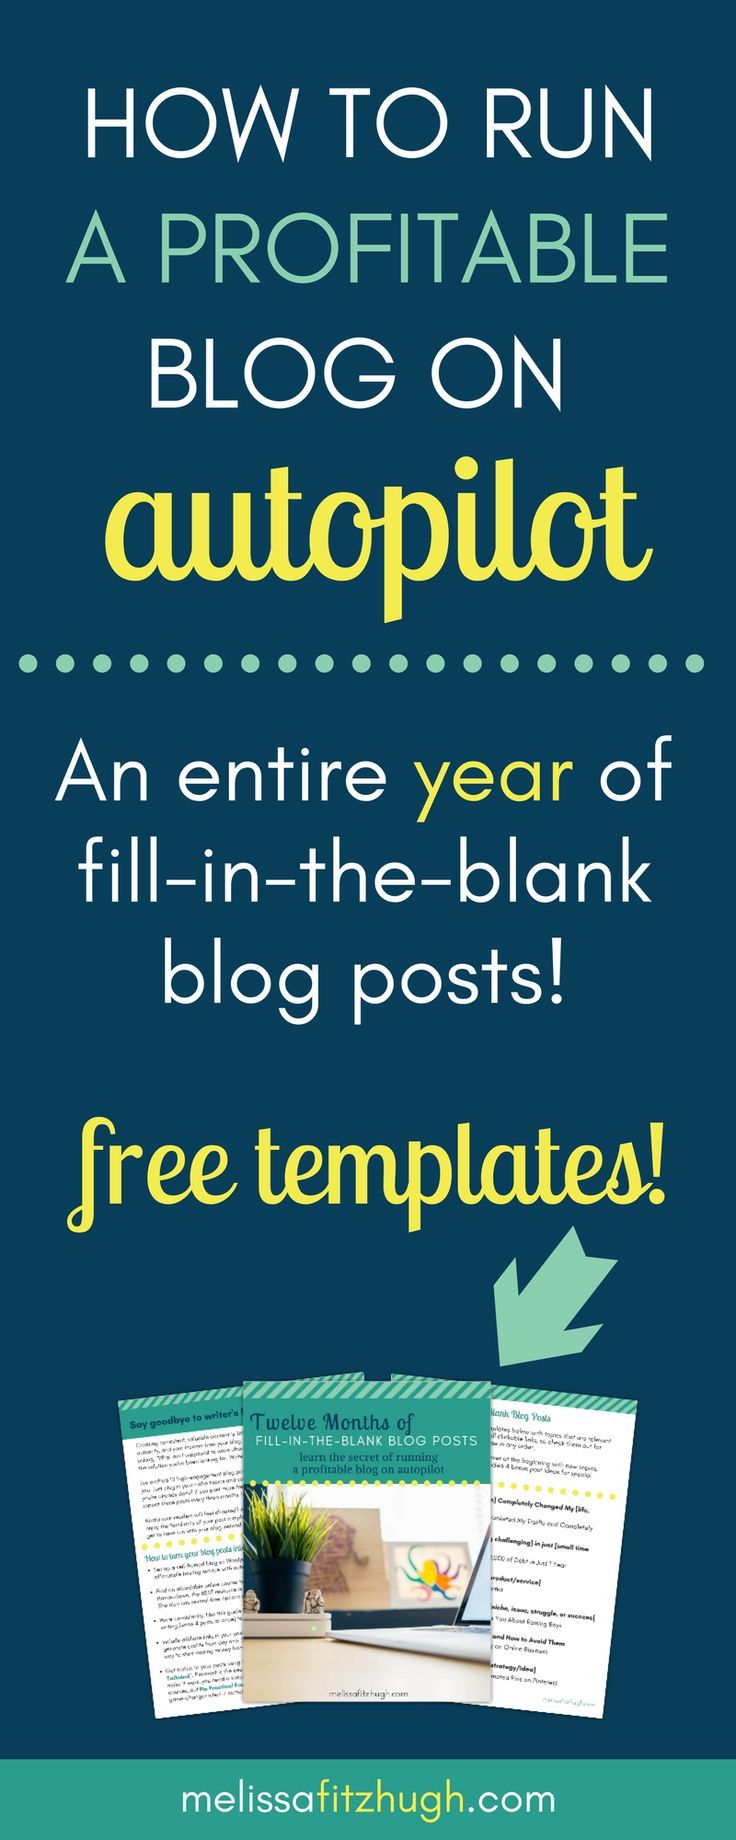 Say goodbye to writer's block once and for all! Get 12 months of Facebook Live ideas and Blog Post Content ideas delivered straight to your inbox! Perfect for beginner bloggers and all kinds of niches! #GirlBoss #WAHM #LessHustleMoreHappy